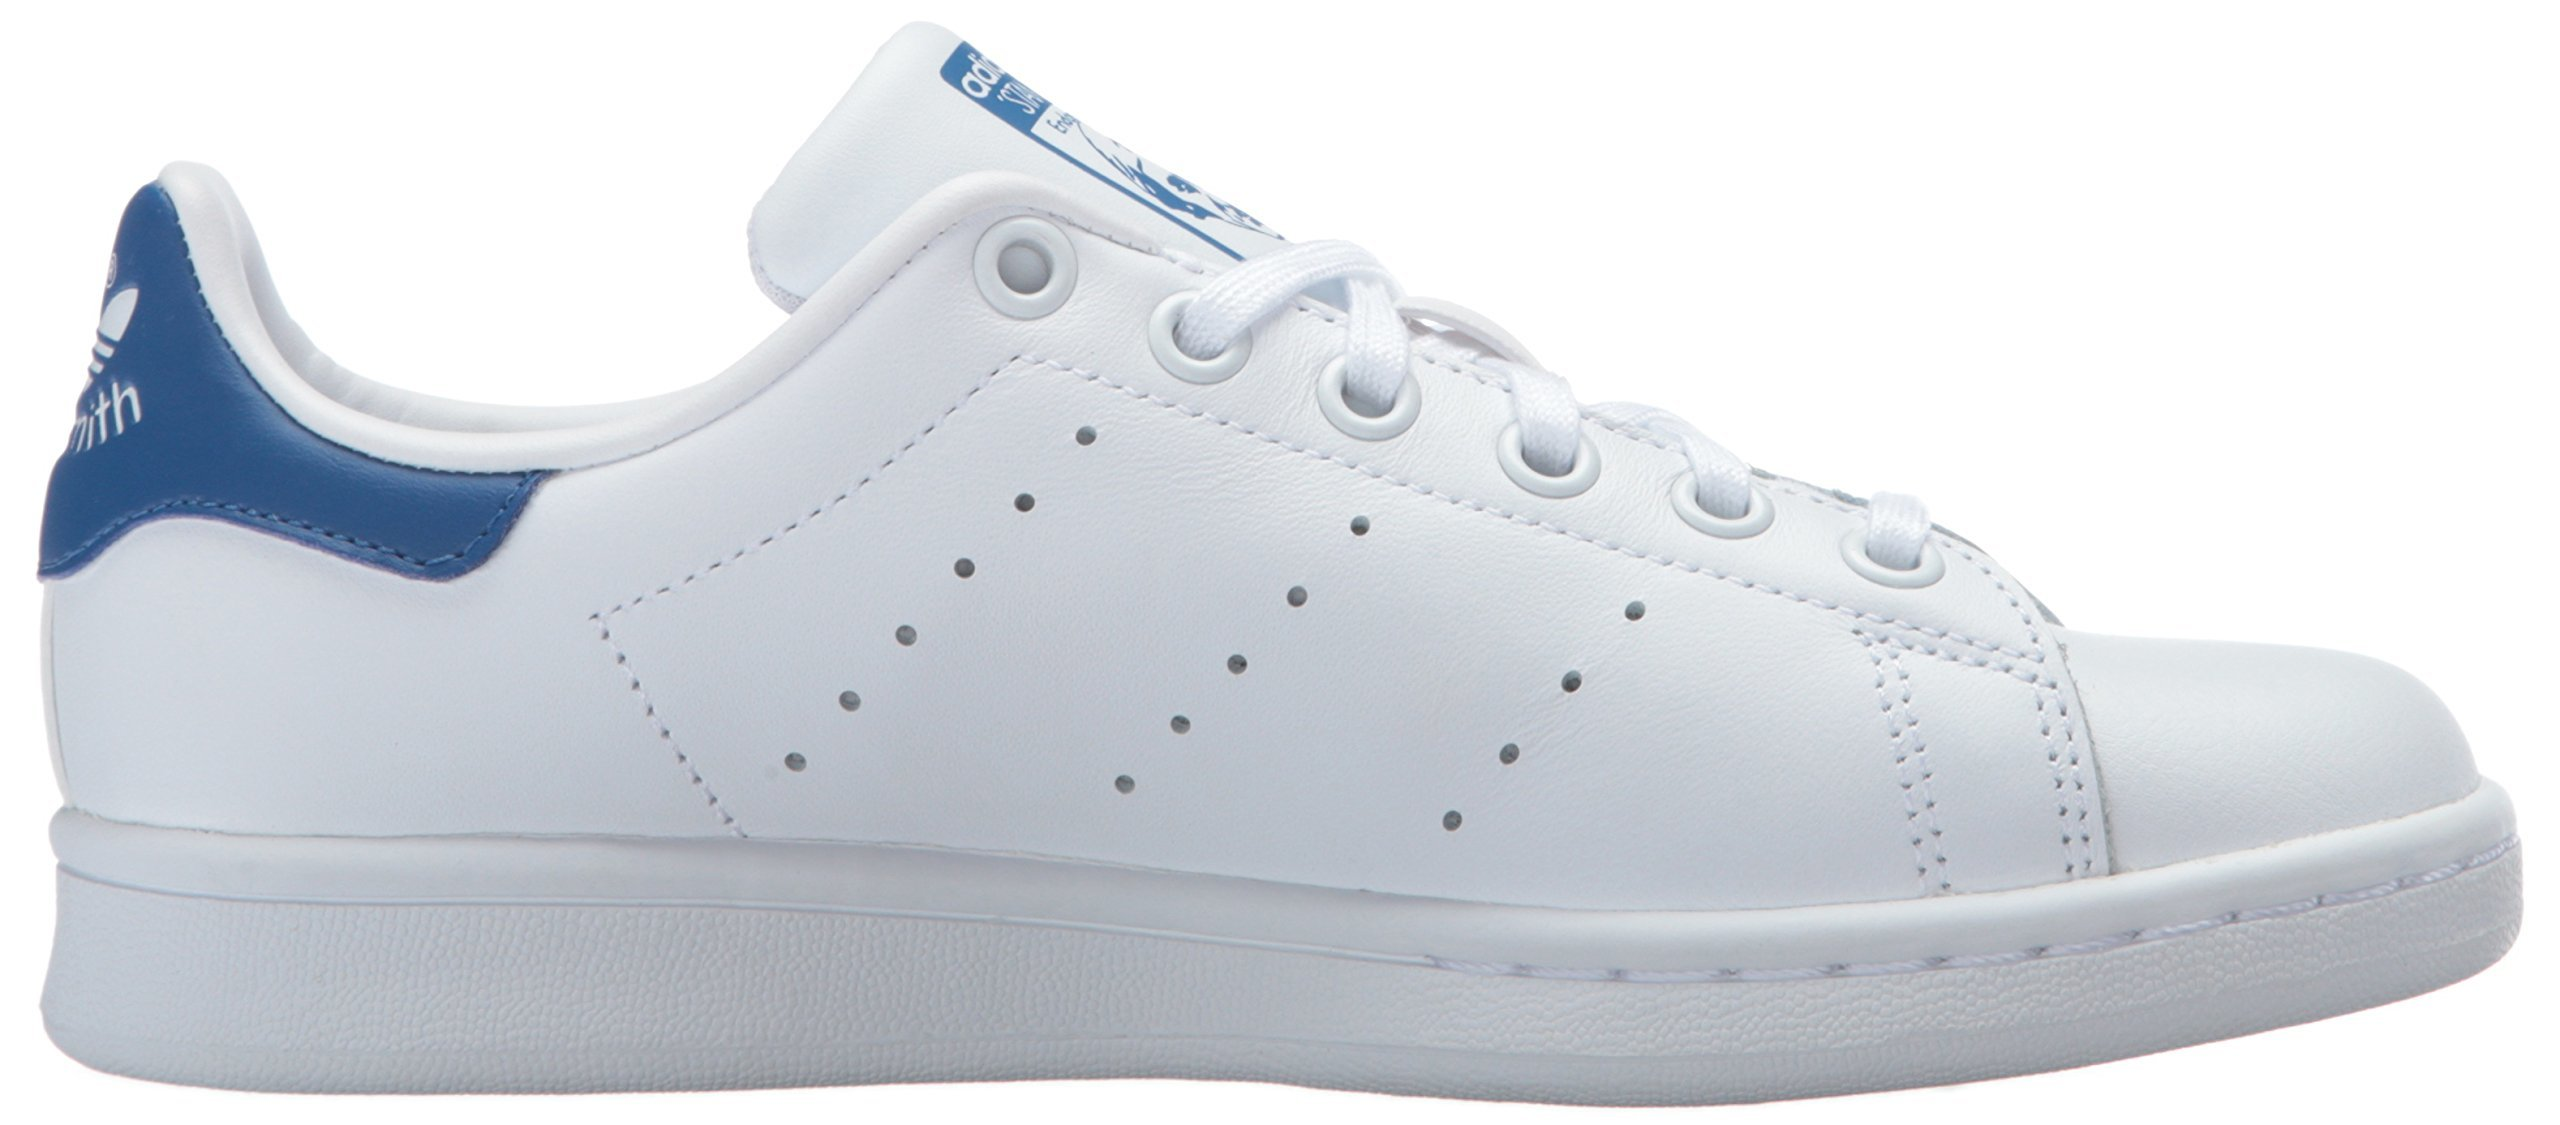 originals stan smith kids Blue